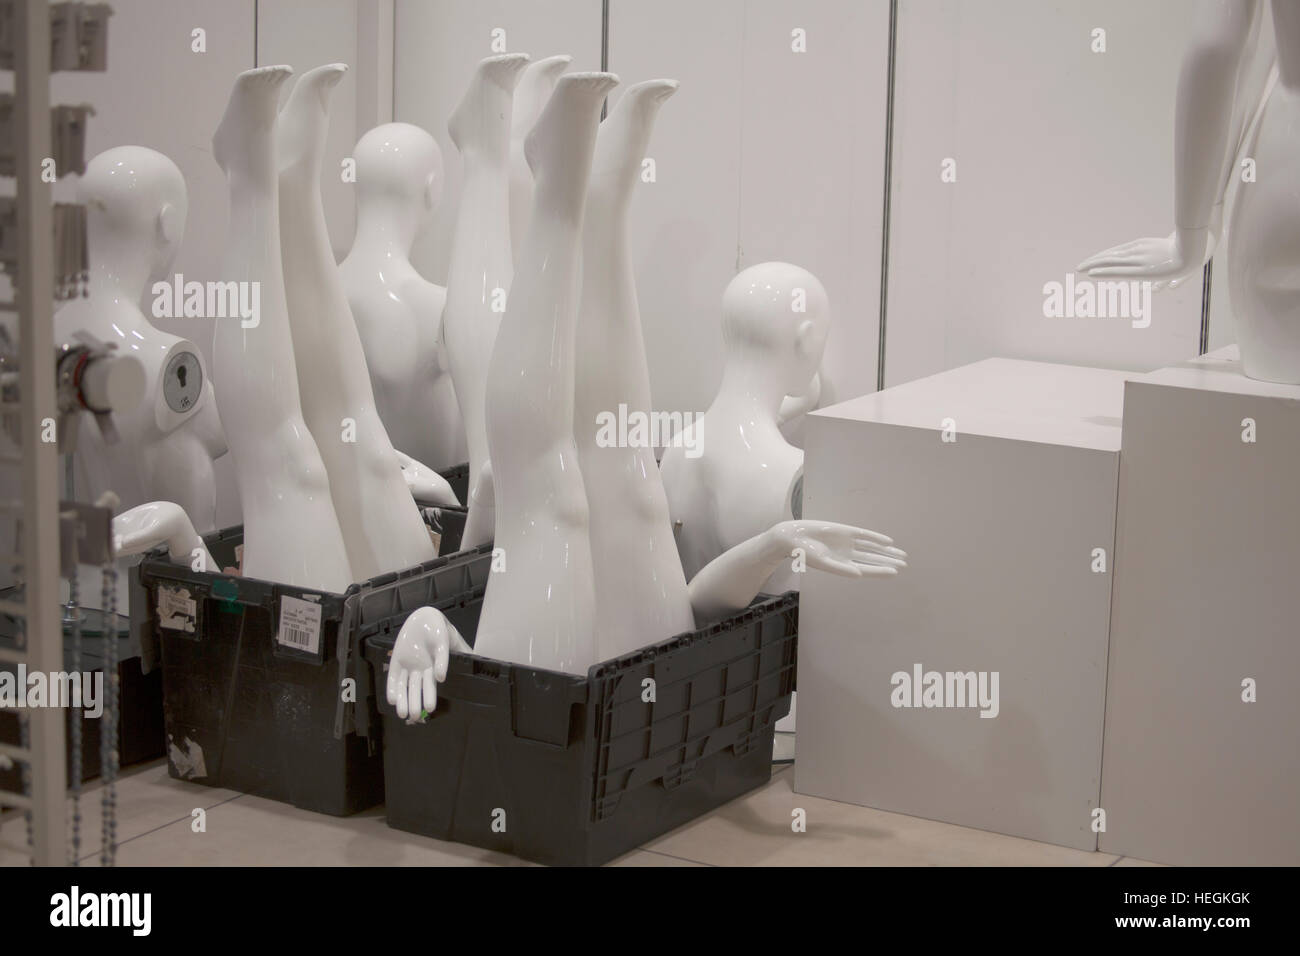 mannequin,upside down,taken apart, packed away, closing down, in box, legs sticking up, stashed away, hands out,in - Stock Image